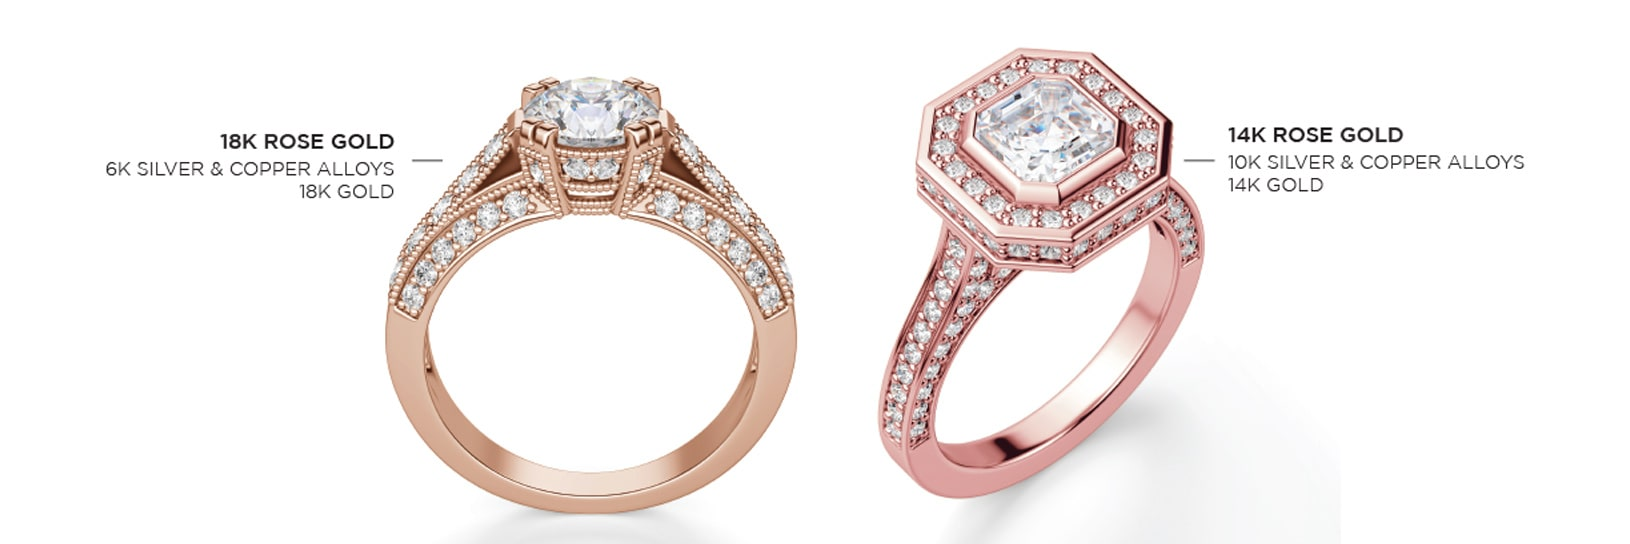 An 18K rose gold ring and a 14K rose gold ring side by side